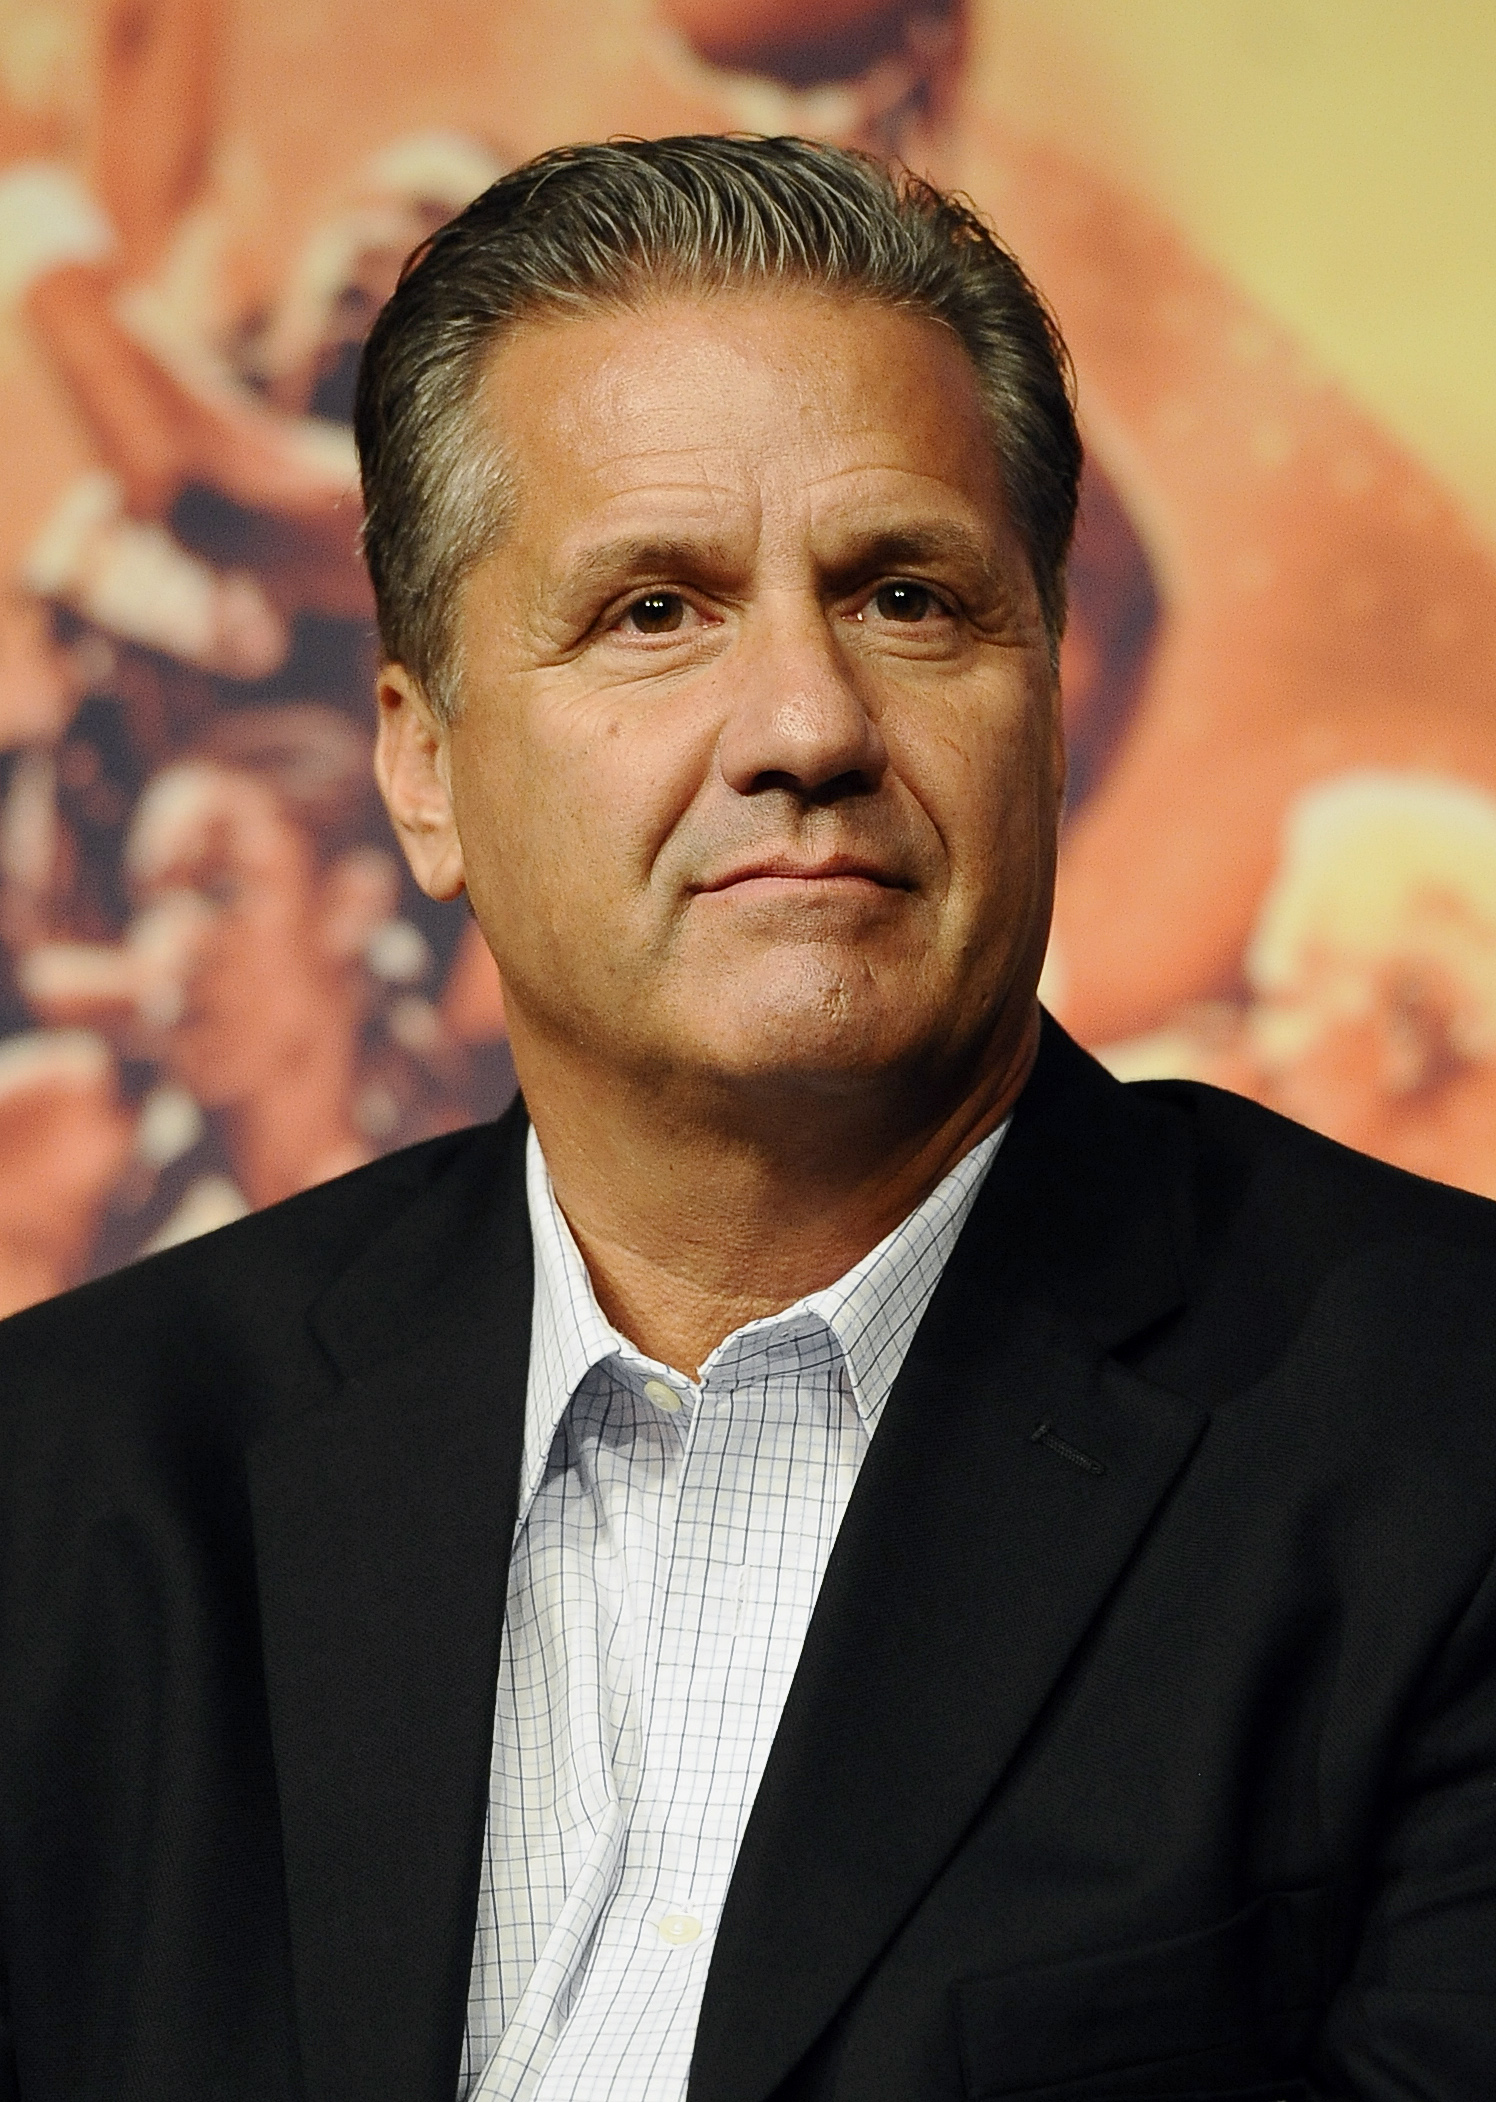 John Calipari of the 2015 class of inductee into the Basketball Hall of Fame during a news conference at the Naismith Memorial Basketball Hall of Fame, Thursday, Sept. 10, 2015, in Springfield, Mass. (AP Photo/Jessica Hill)